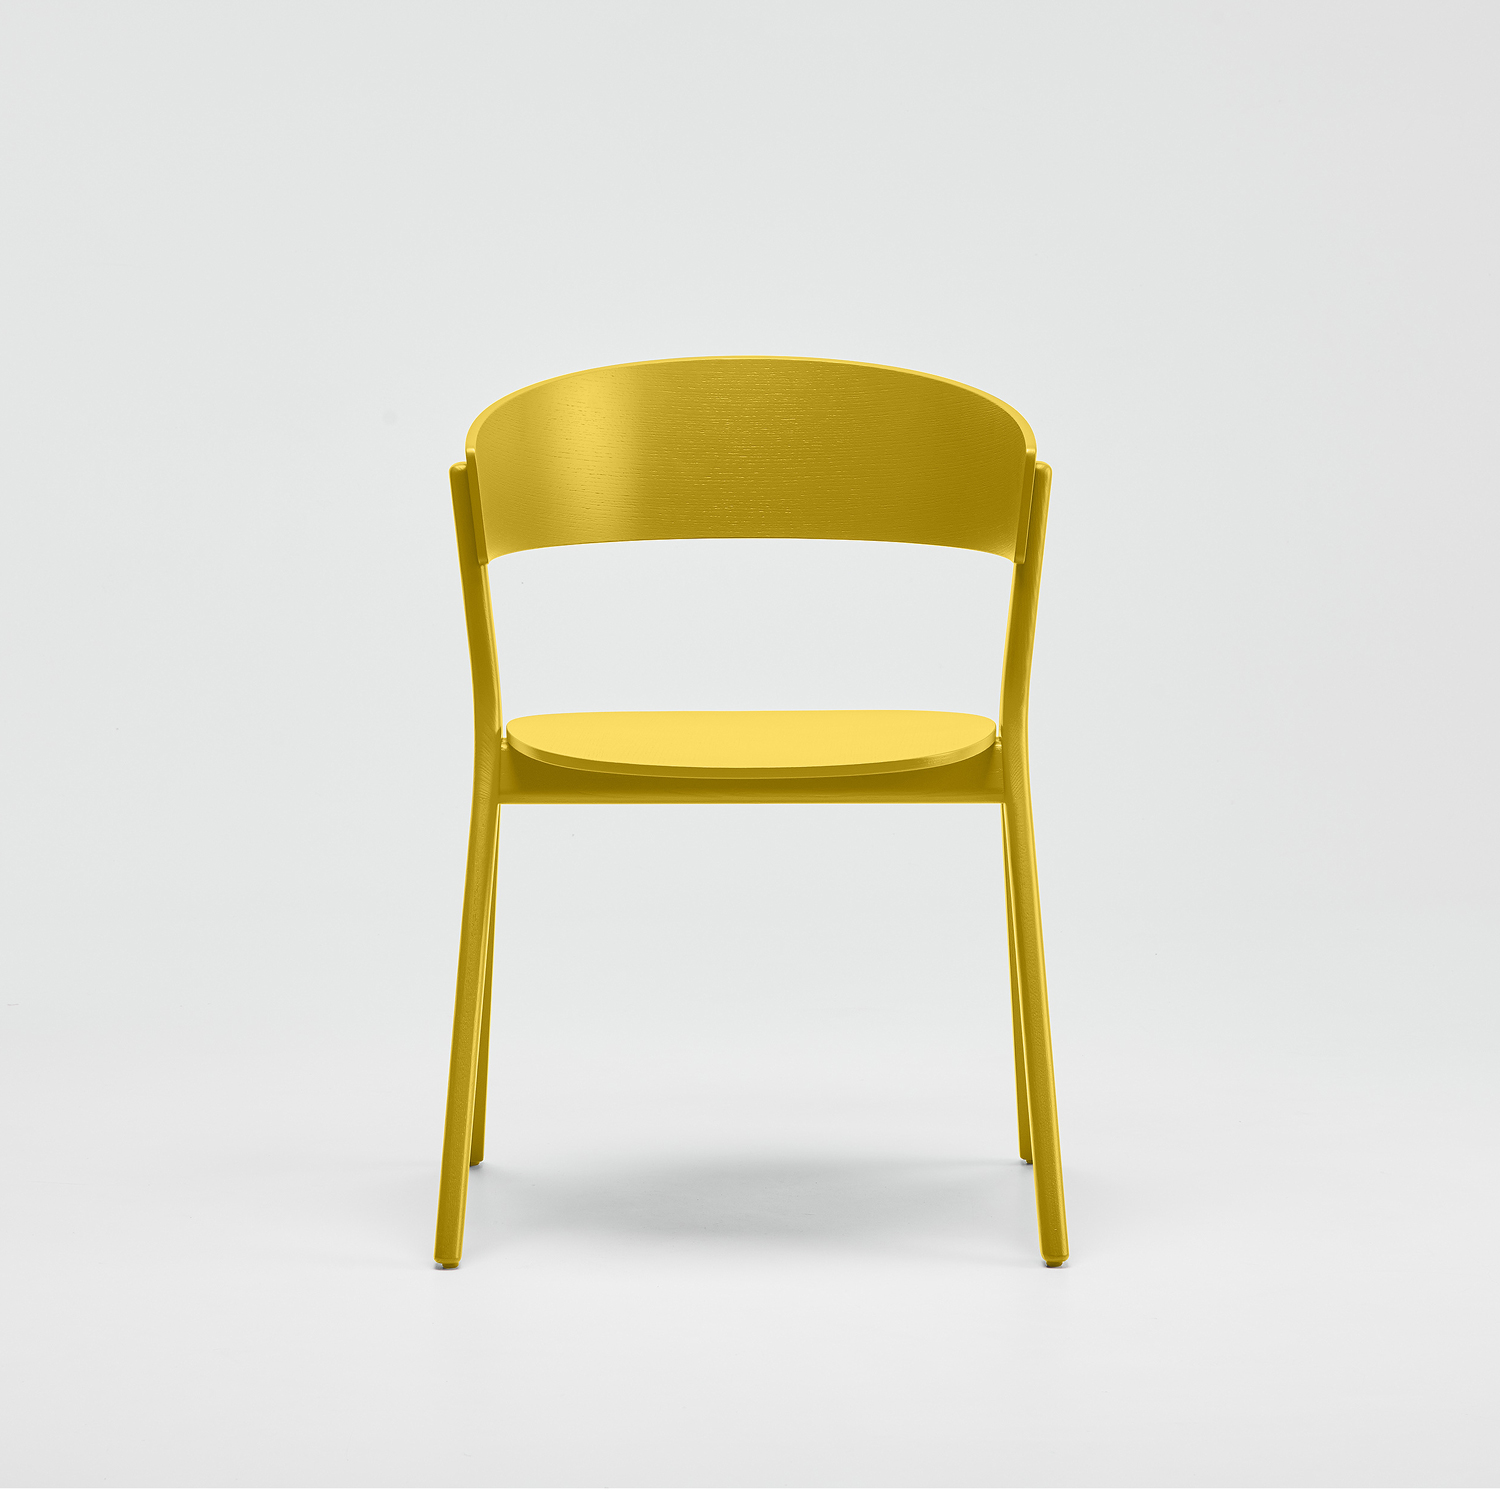 EDITS Circus wood chair in Lemon Yellow lacquer